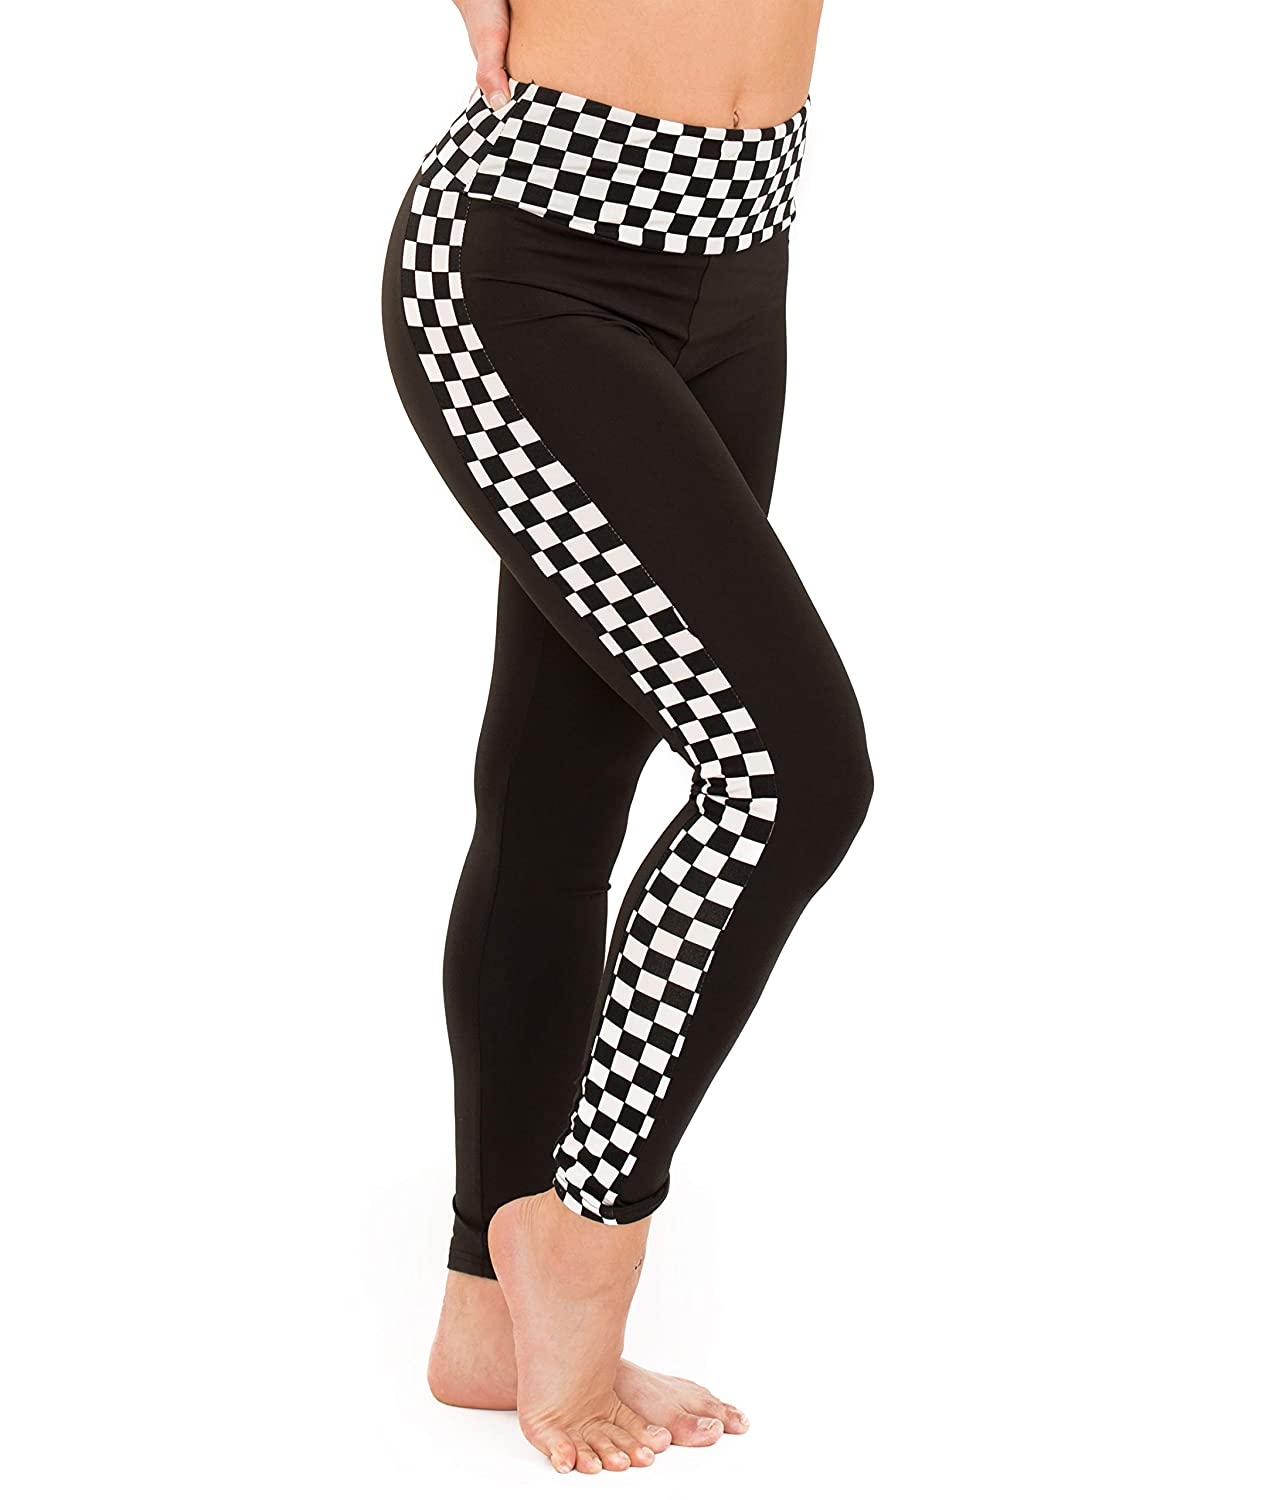 ff1af65c13e6a Amazon.com: Black-White Checkered Plaid Full Length Leggings - Patterned  Pants Side Stripe Plaid Costume Tights Yoga Pants: Clothing